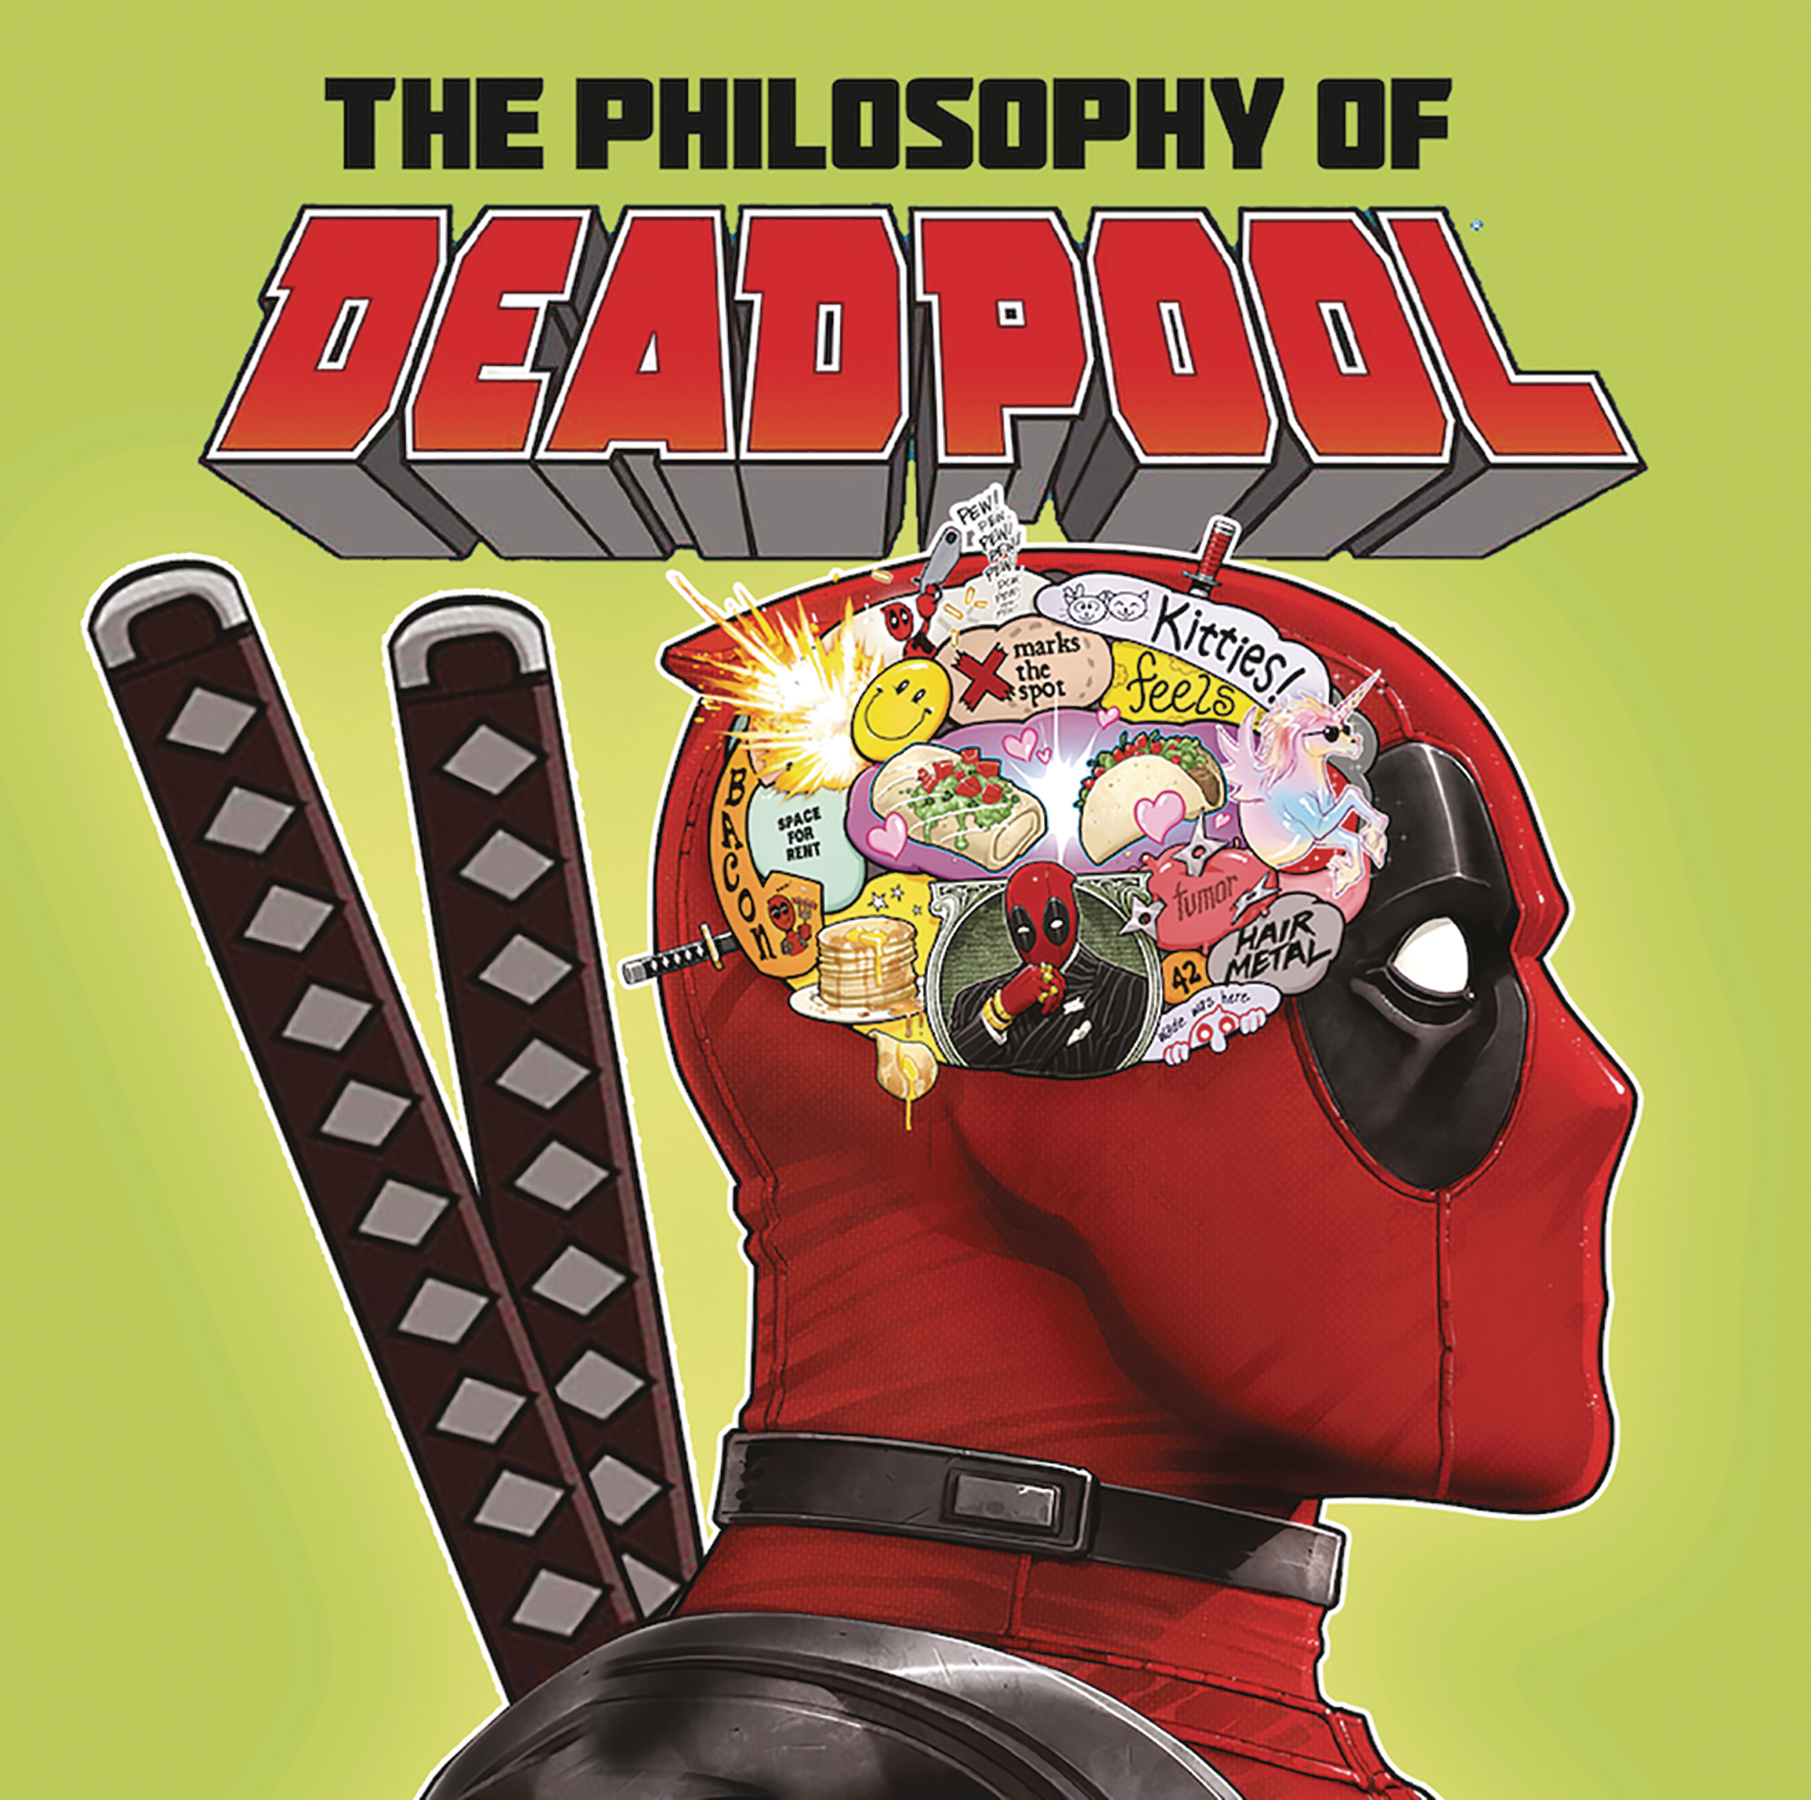 The Philosophy of Deadpool review